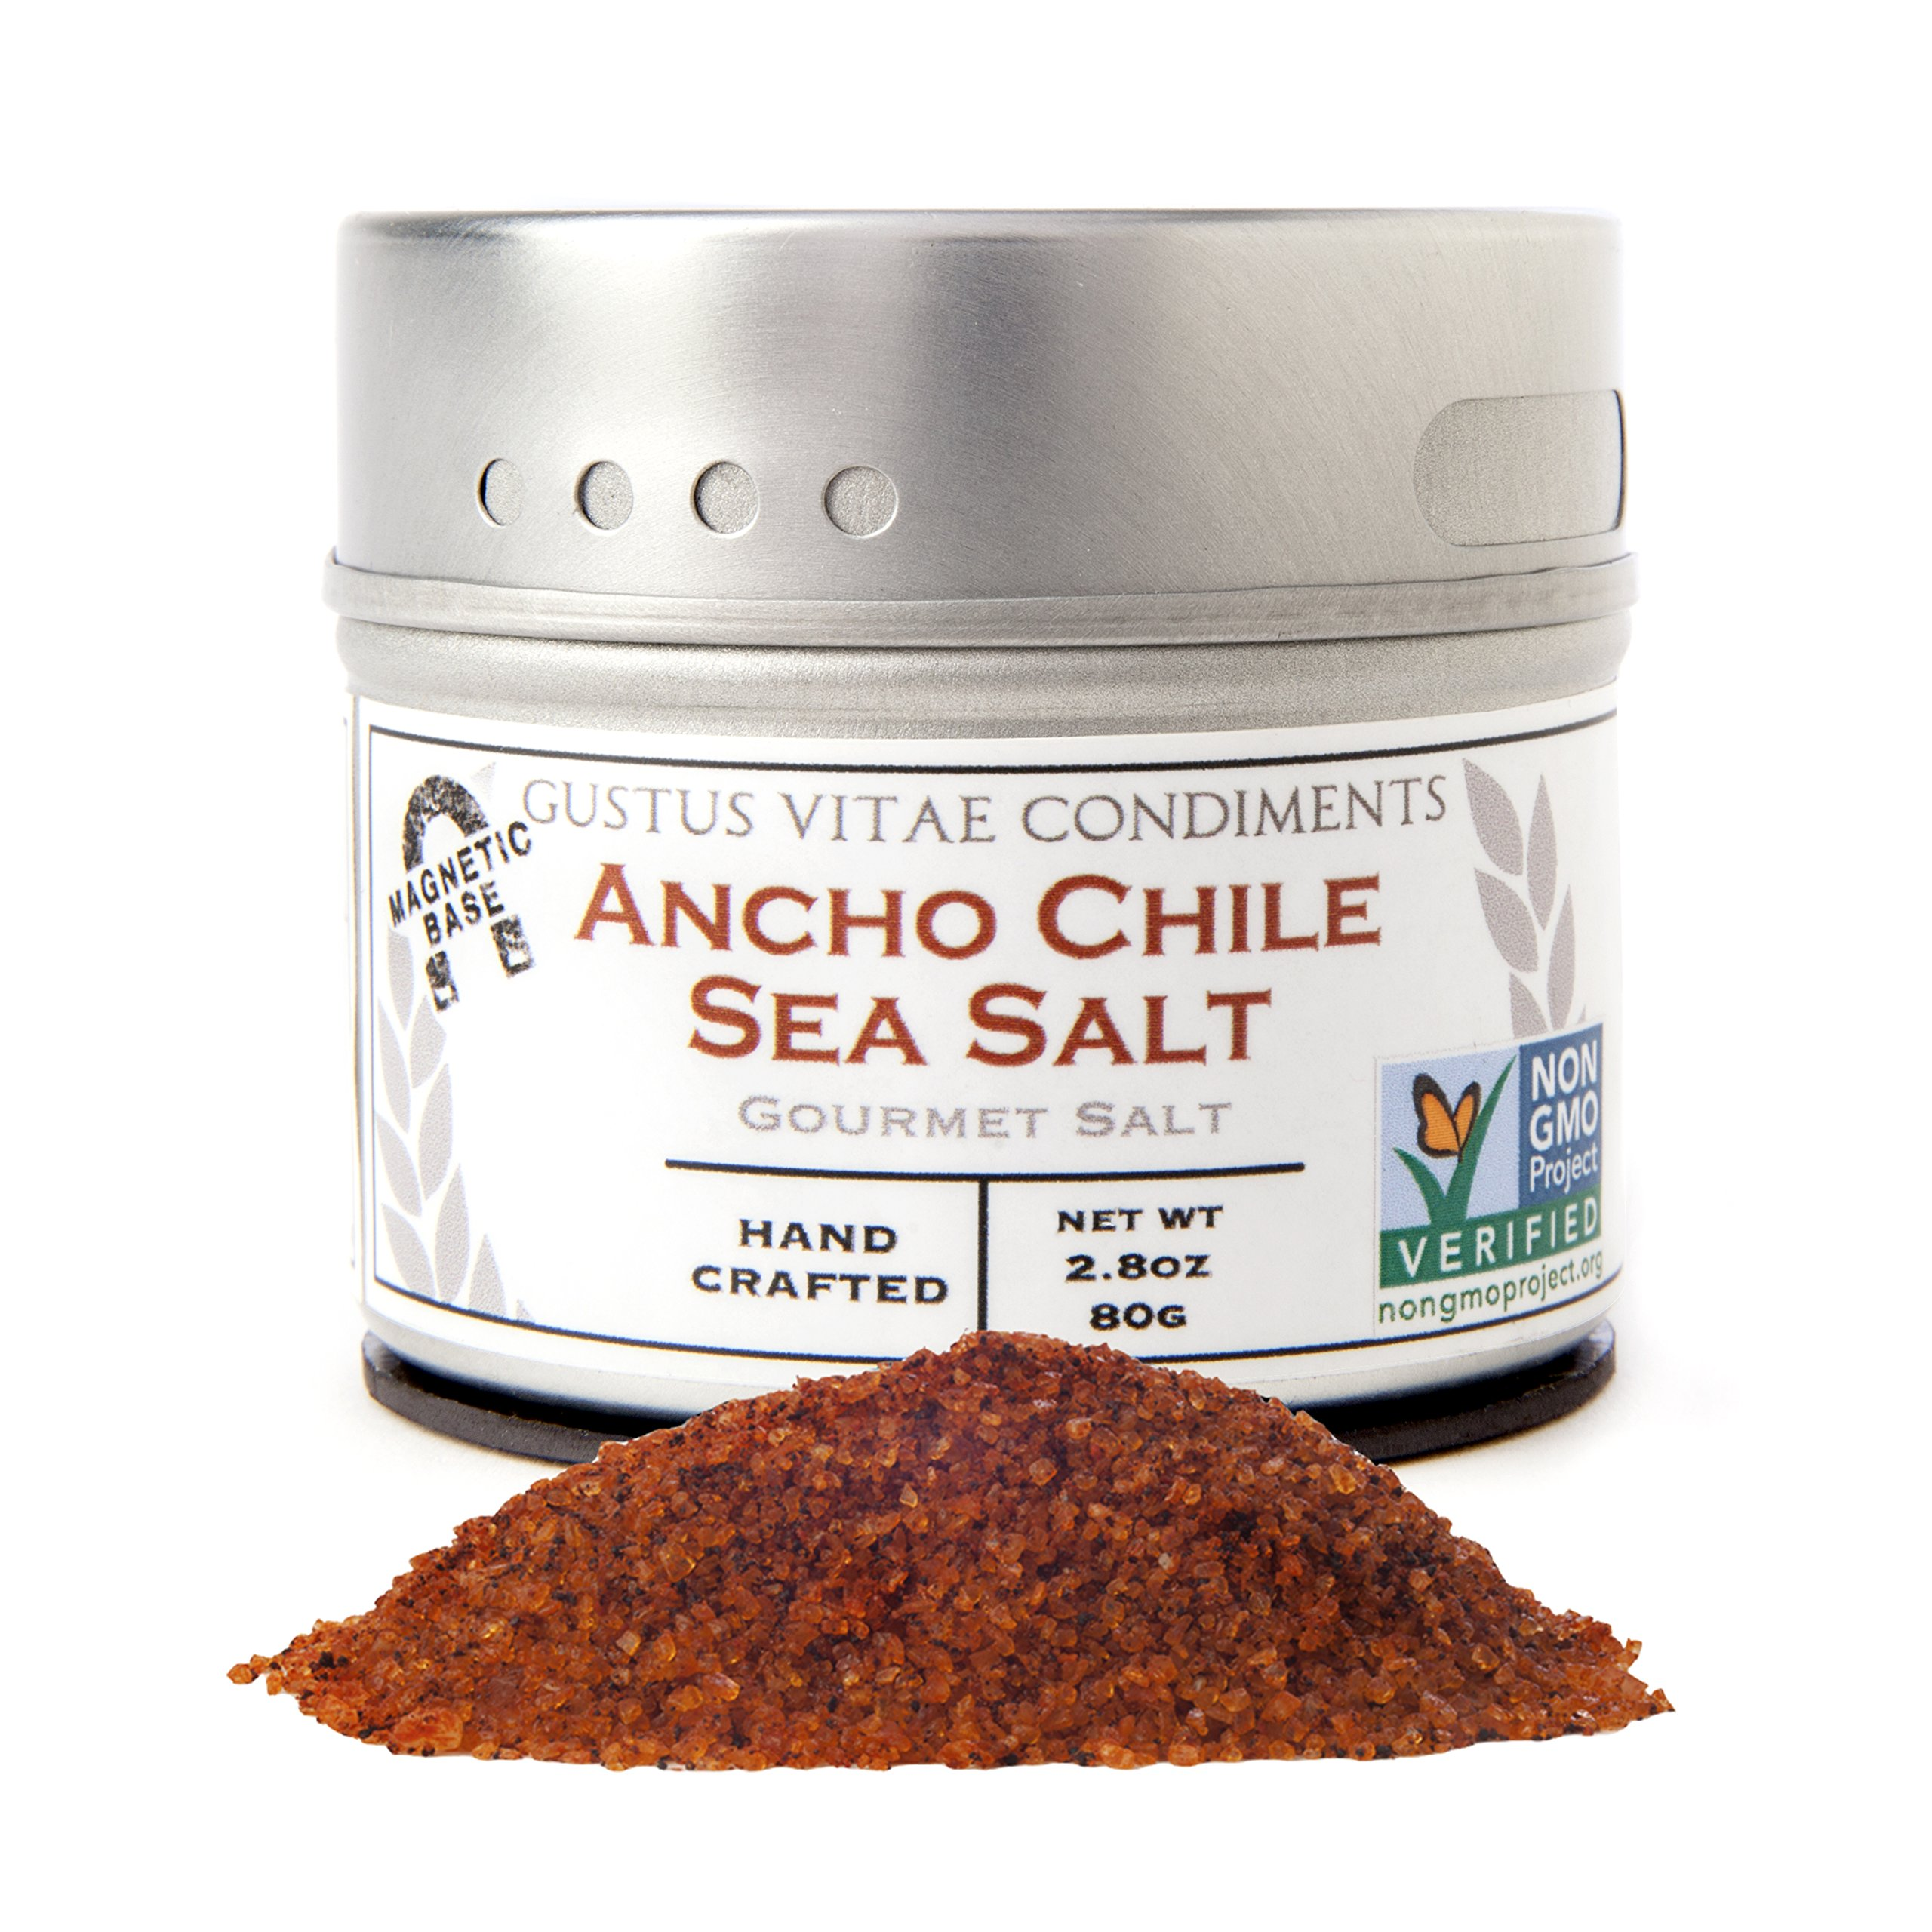 Gustus Vitae Ancho Chile Sea Salt, 2.8 Ounce,Gourmet Salt